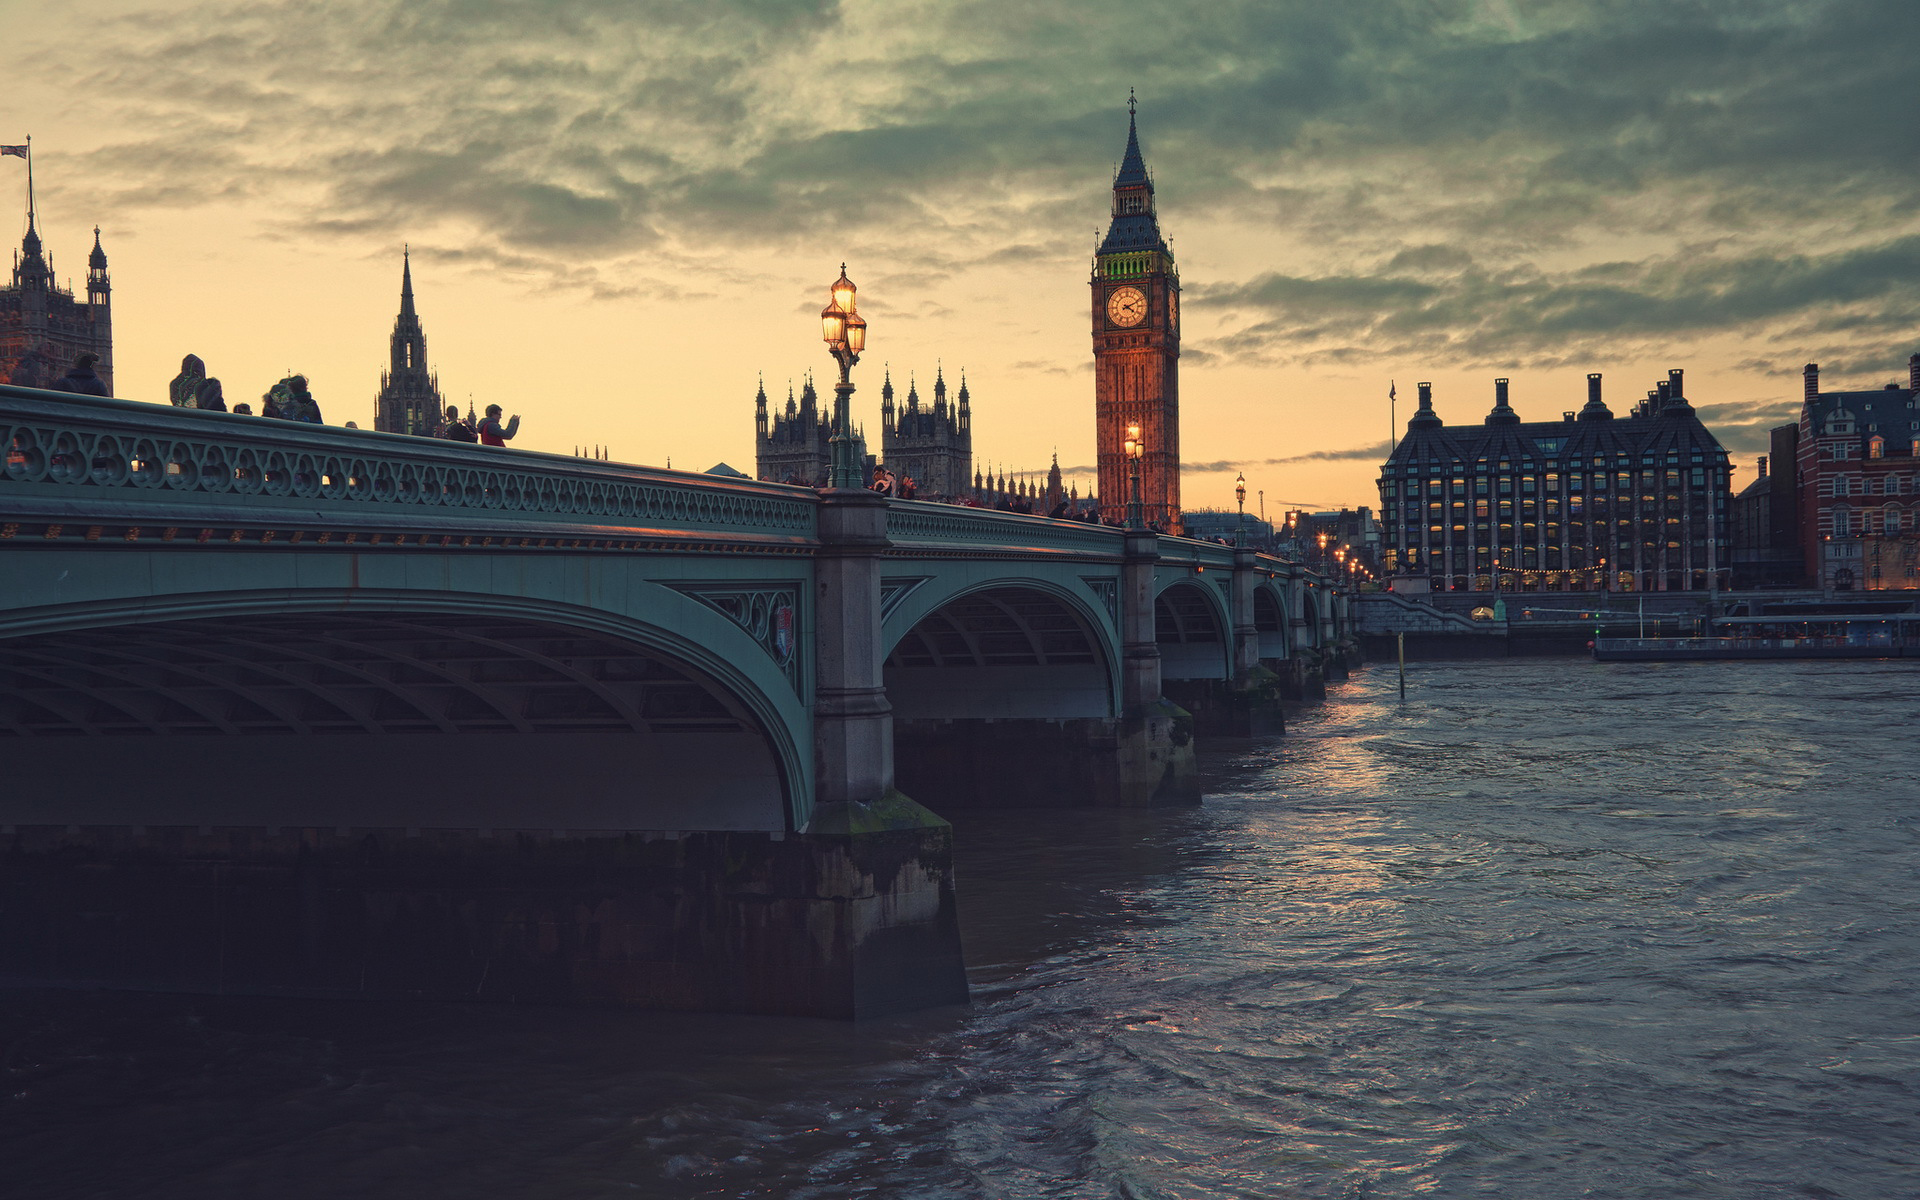 london england wallpapers55com   Best Wallpapers for PCs Laptops 1920x1200